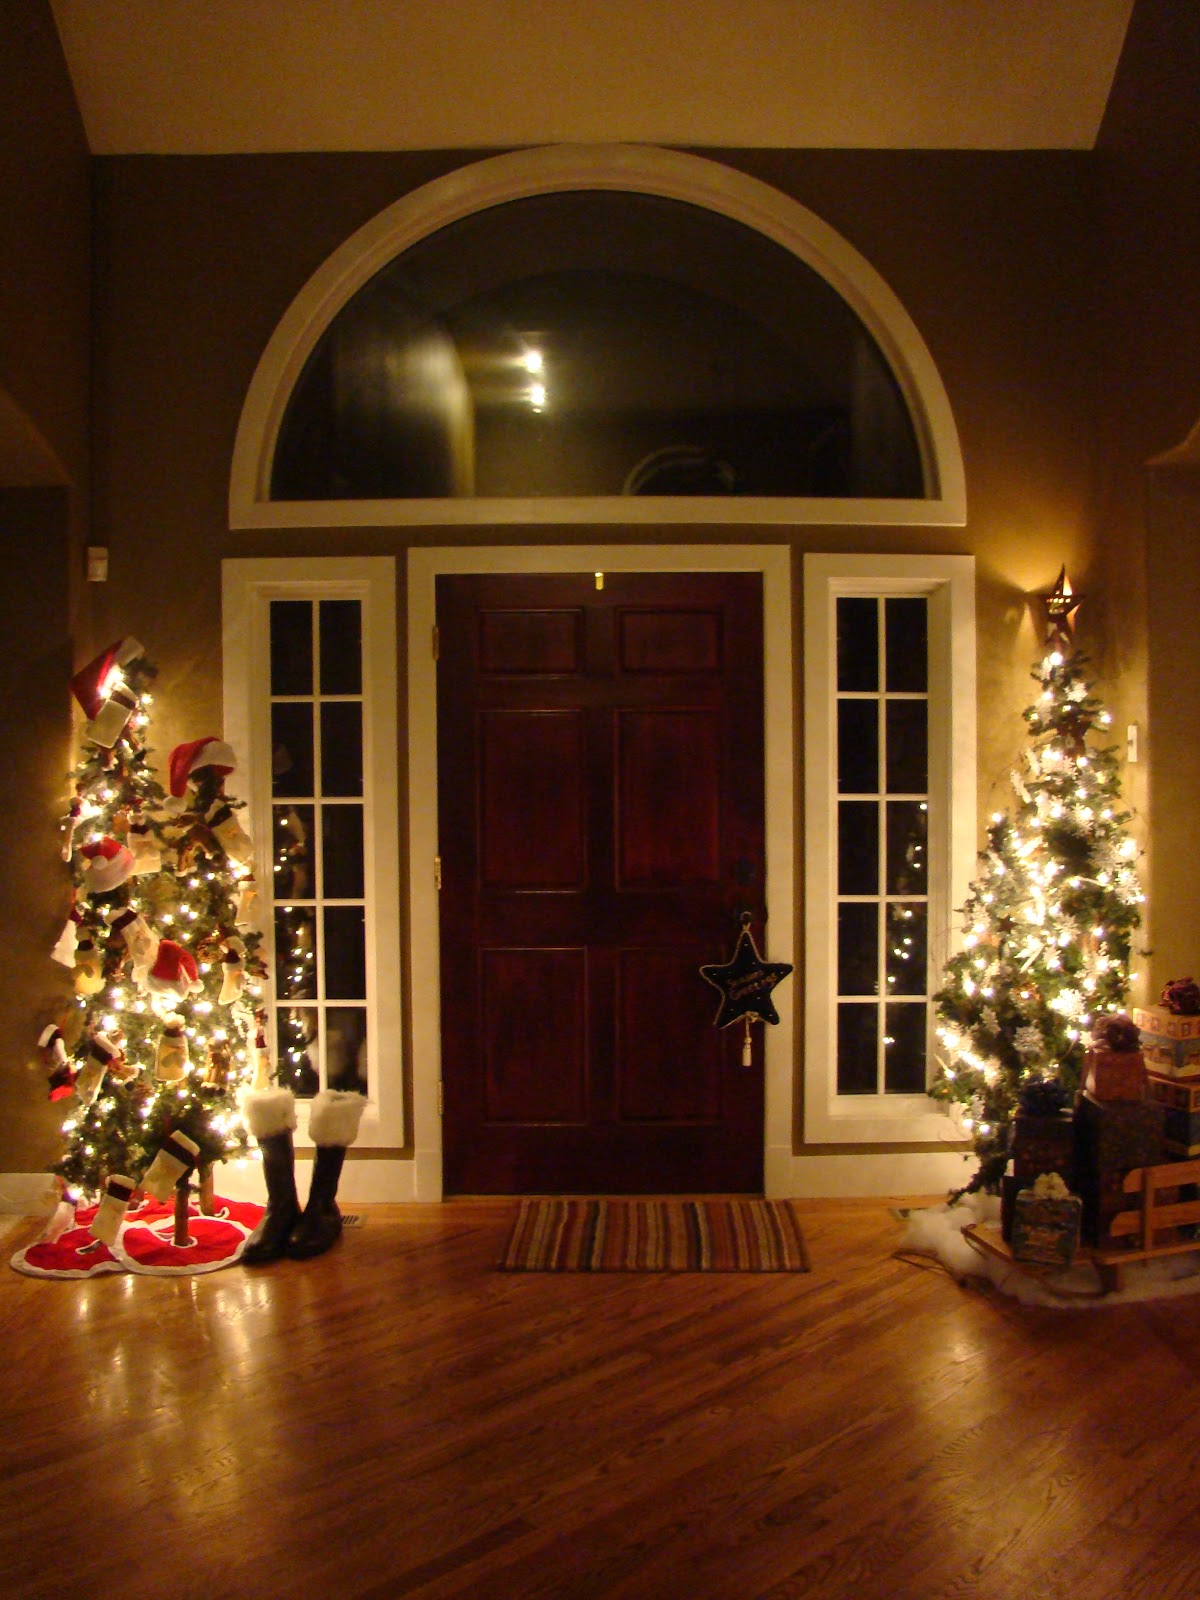 christmas decorations meibimusings christmas decorations entryway - Inside Door Christmas Decorations